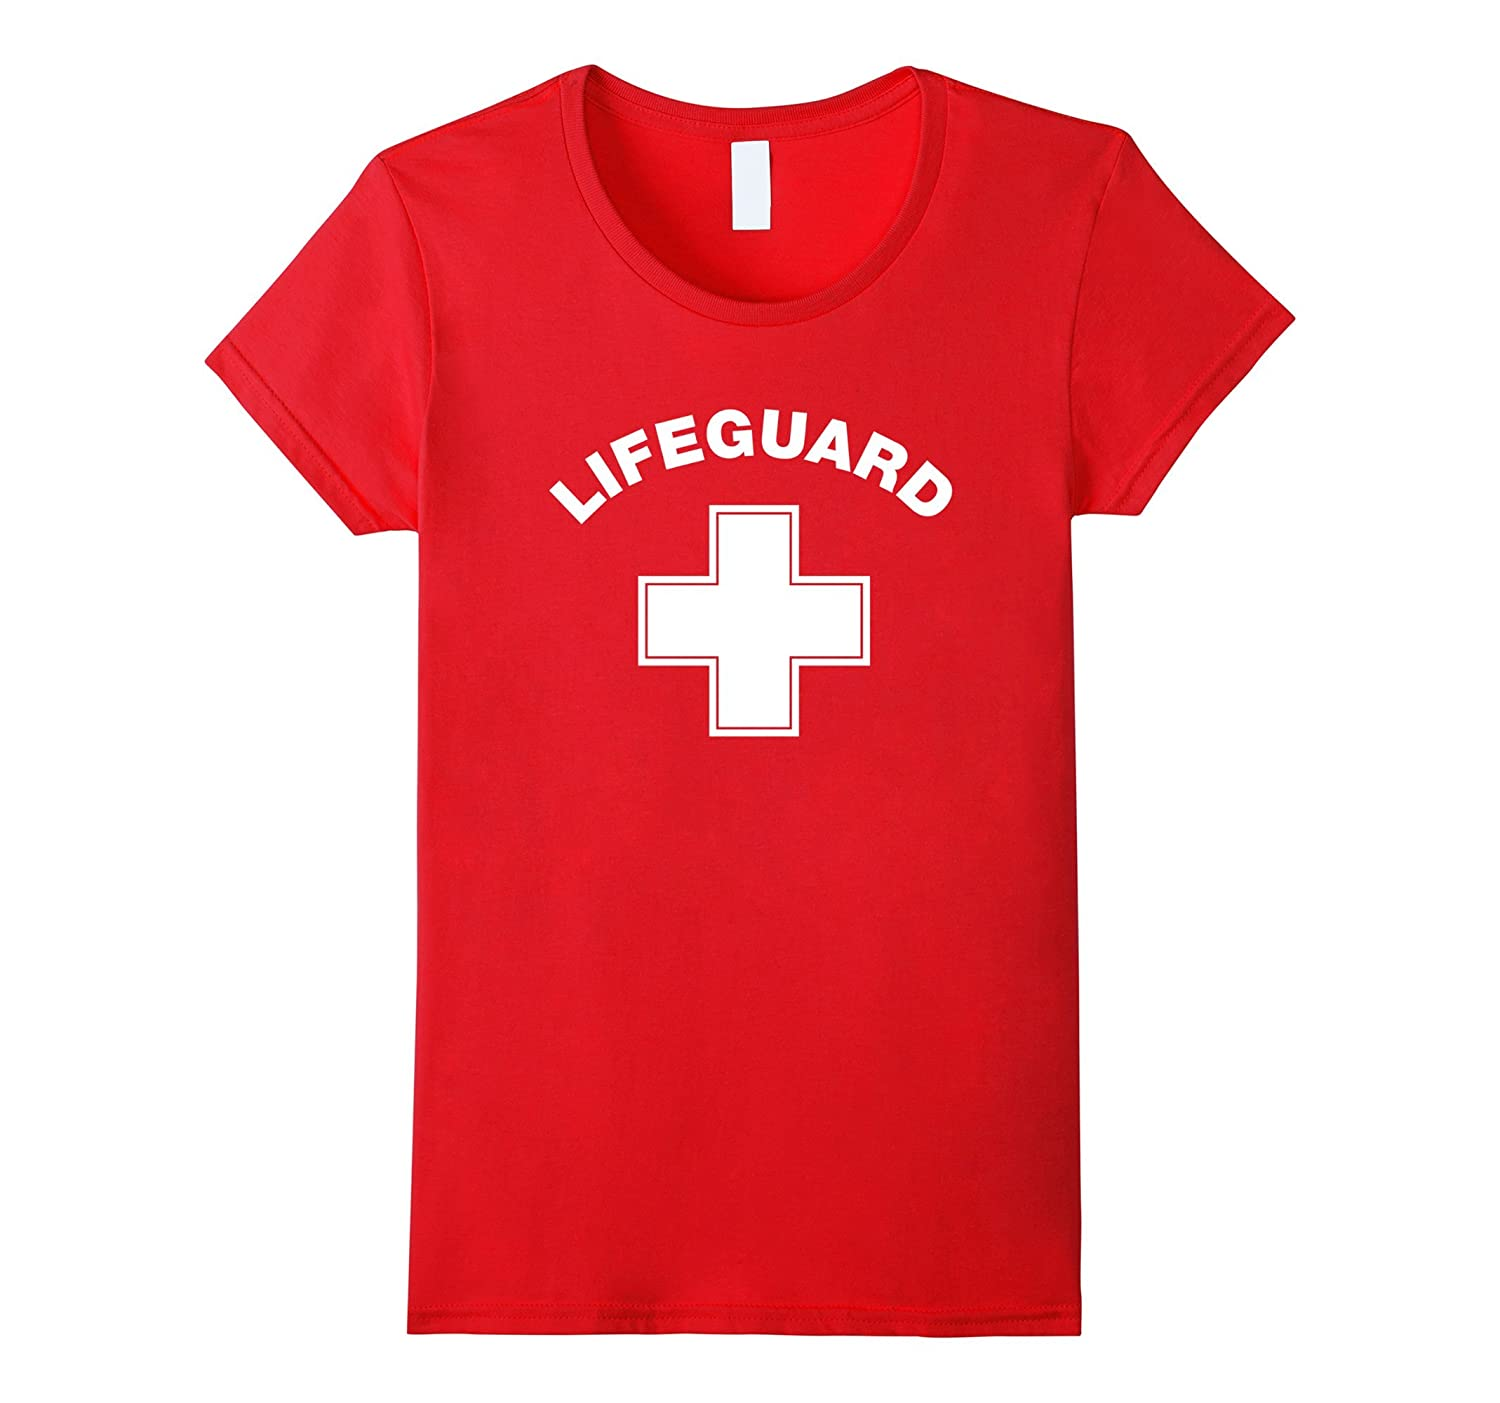 Womens Lifeguard Shirt Women-T-Shirt